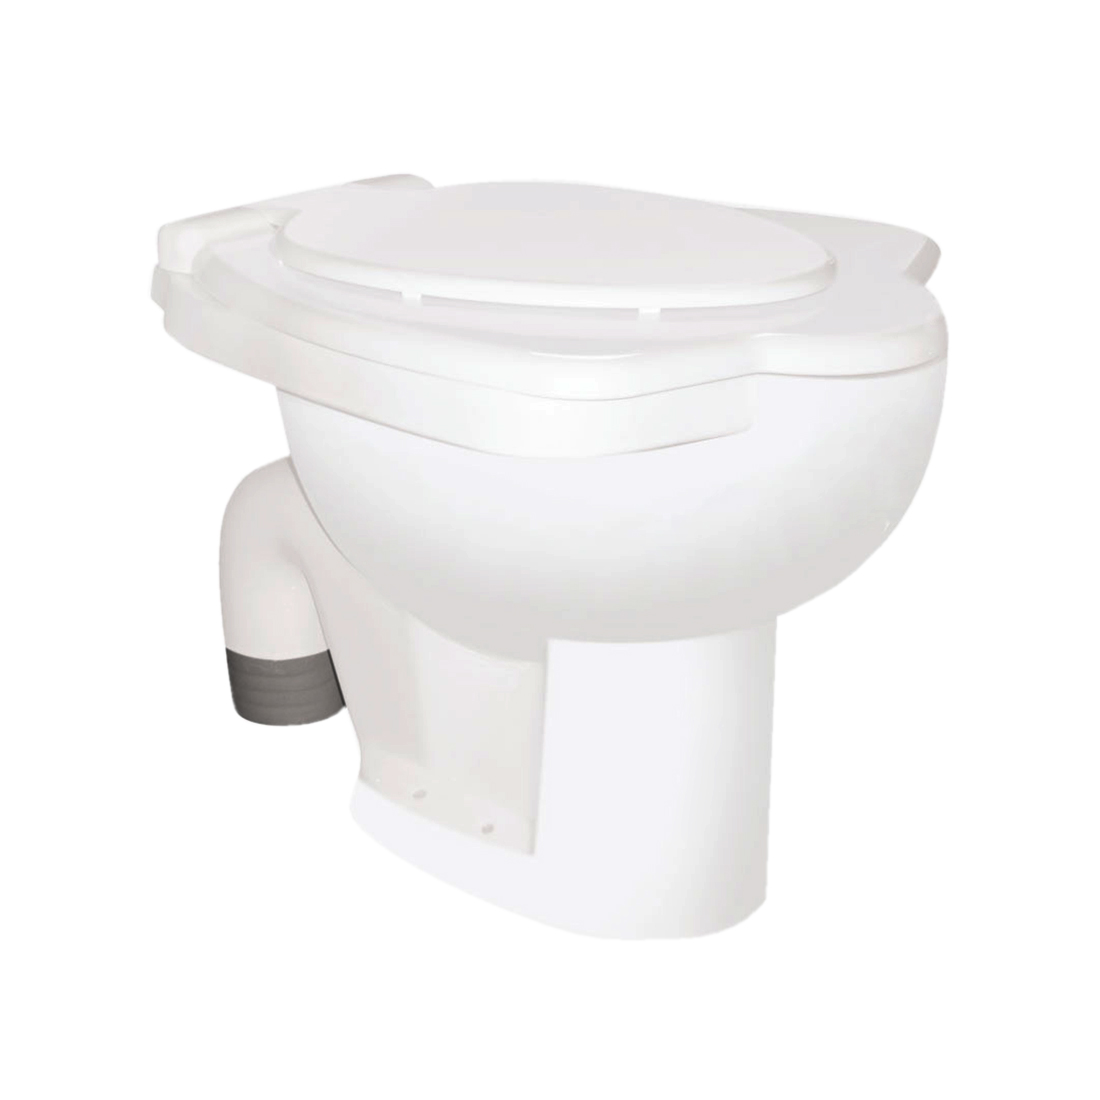 Kerovit Star KS115 Open S-Trap Anglo Indian Water Closet With Seat Cover